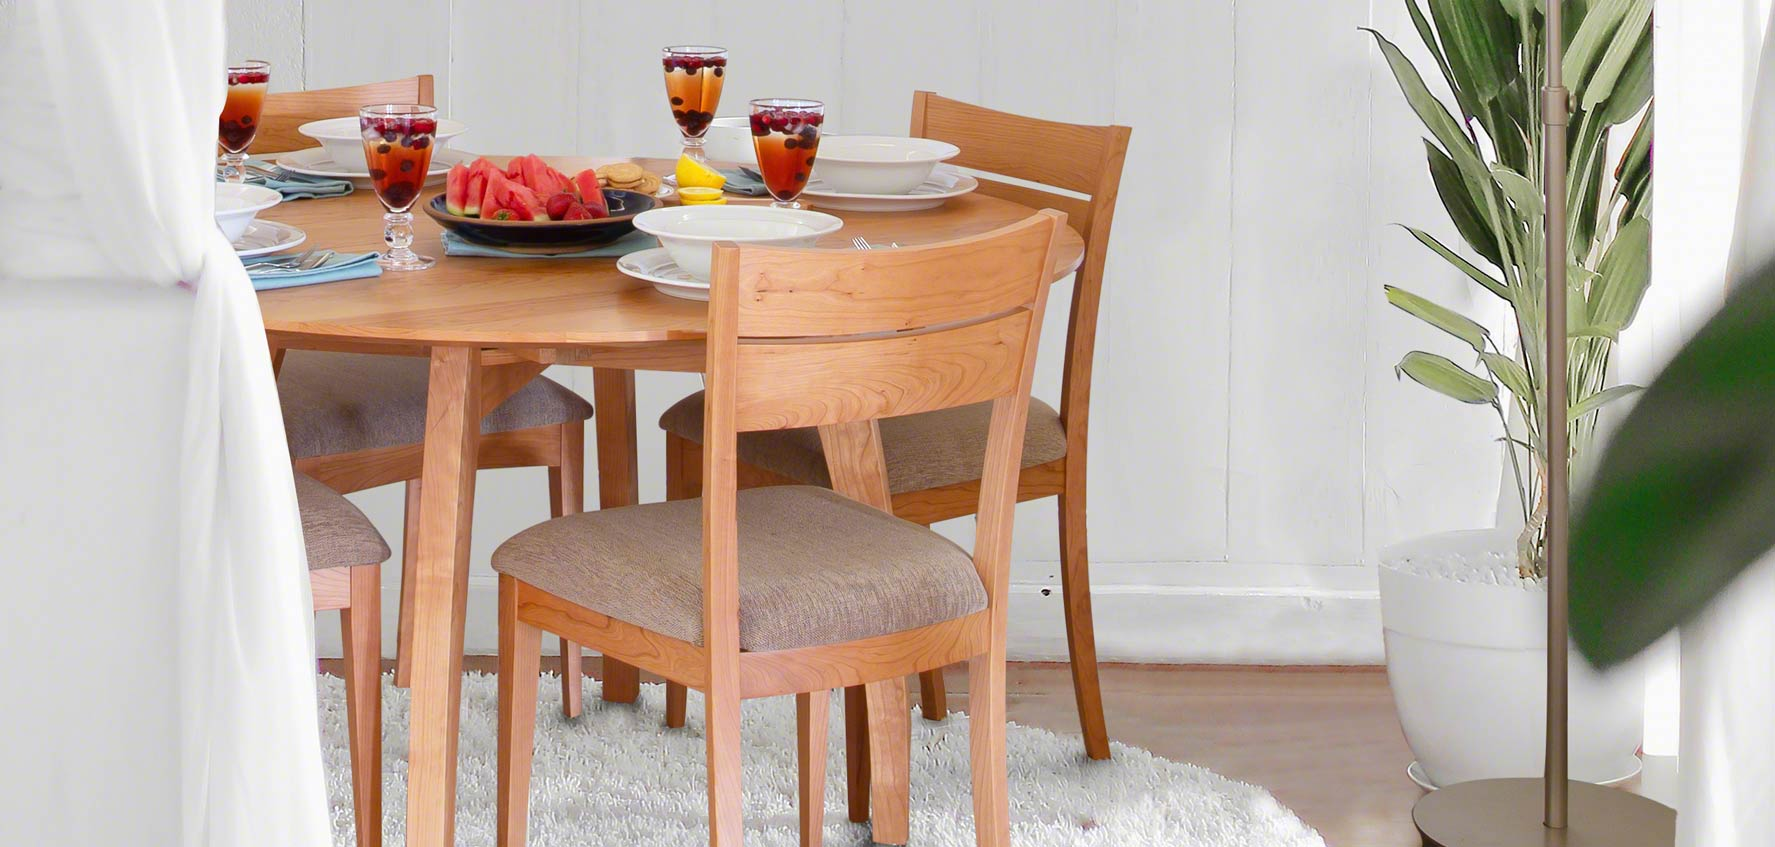 Handcrafted Wood Dining Chairs - Vermont Woods Studios